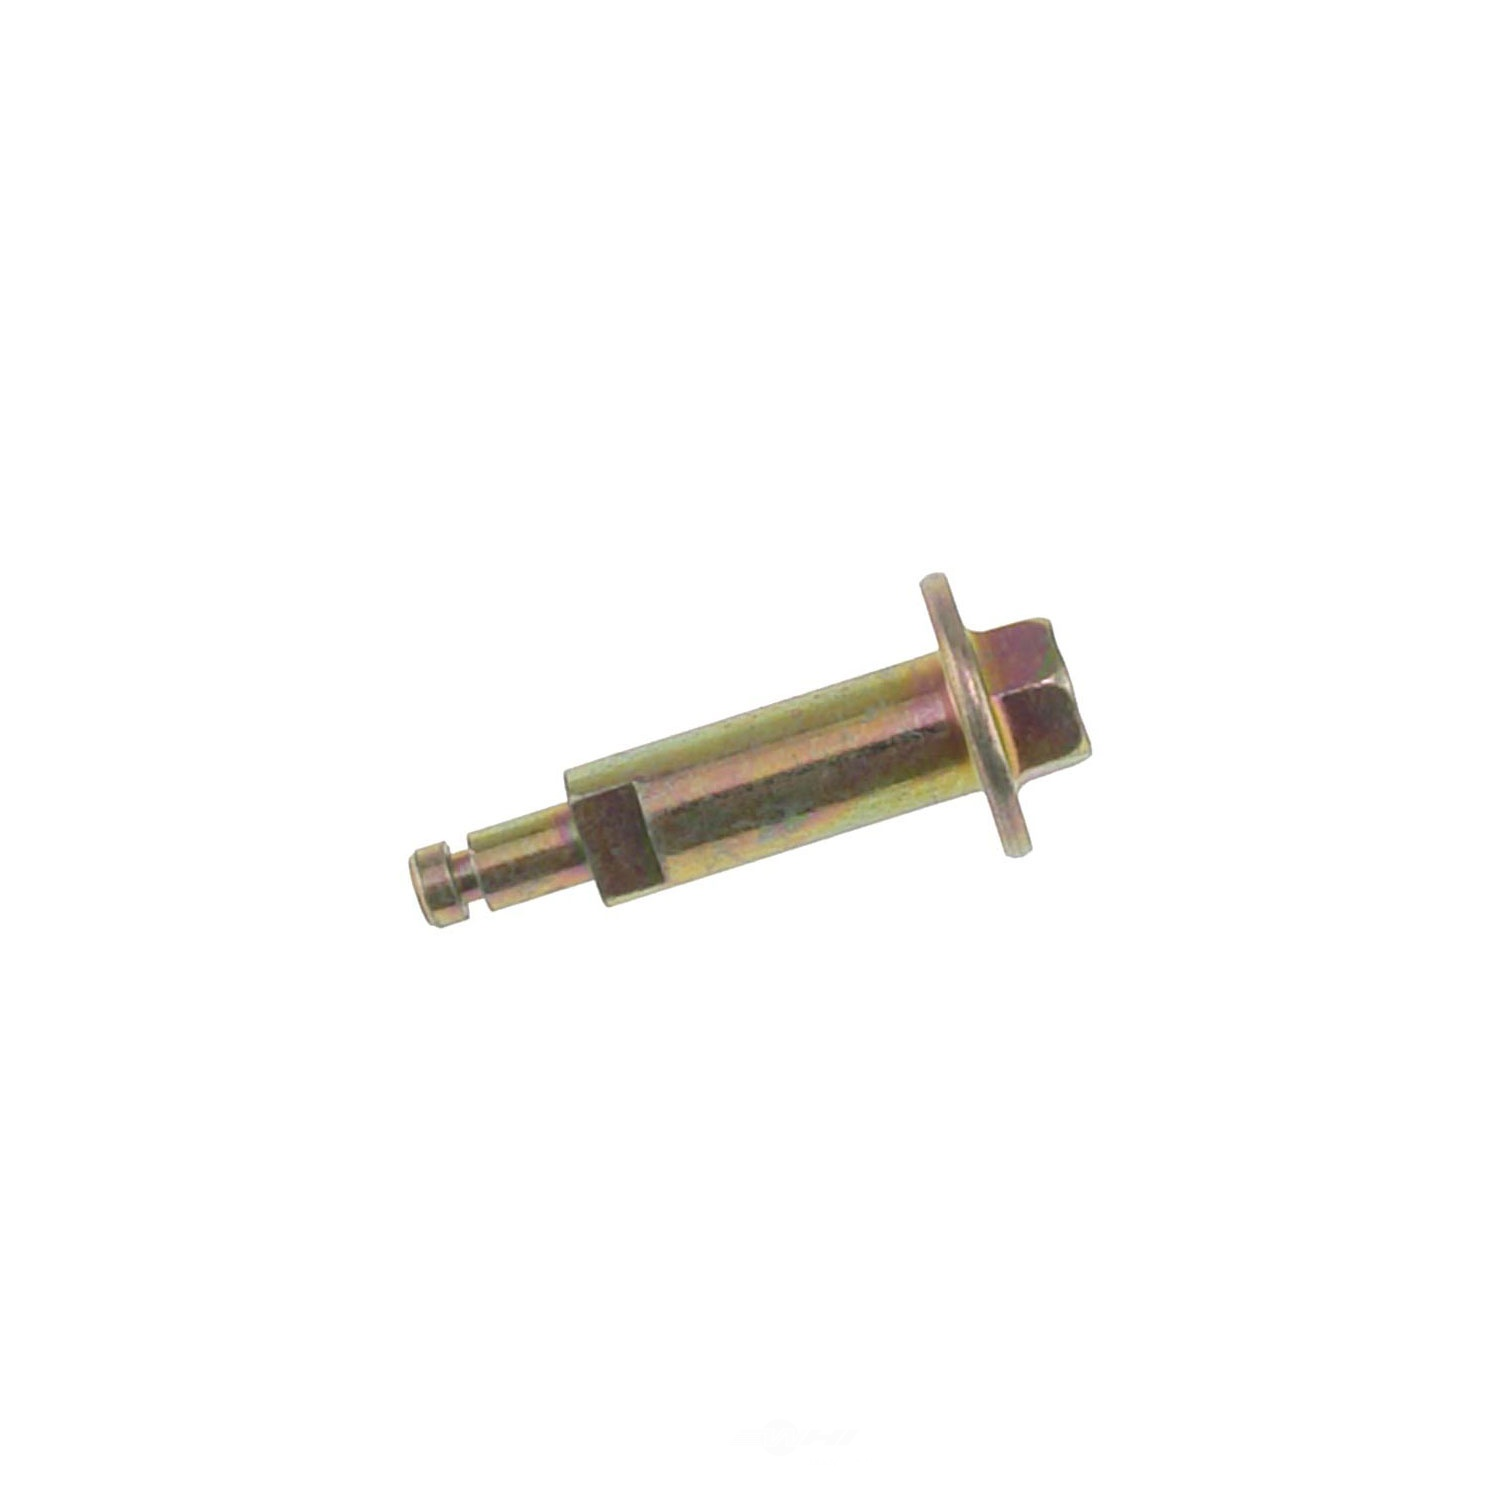 CARLSON QUALITY BRAKE PARTS - Drum Brake Adjusting Cam Stud - CRL H1875